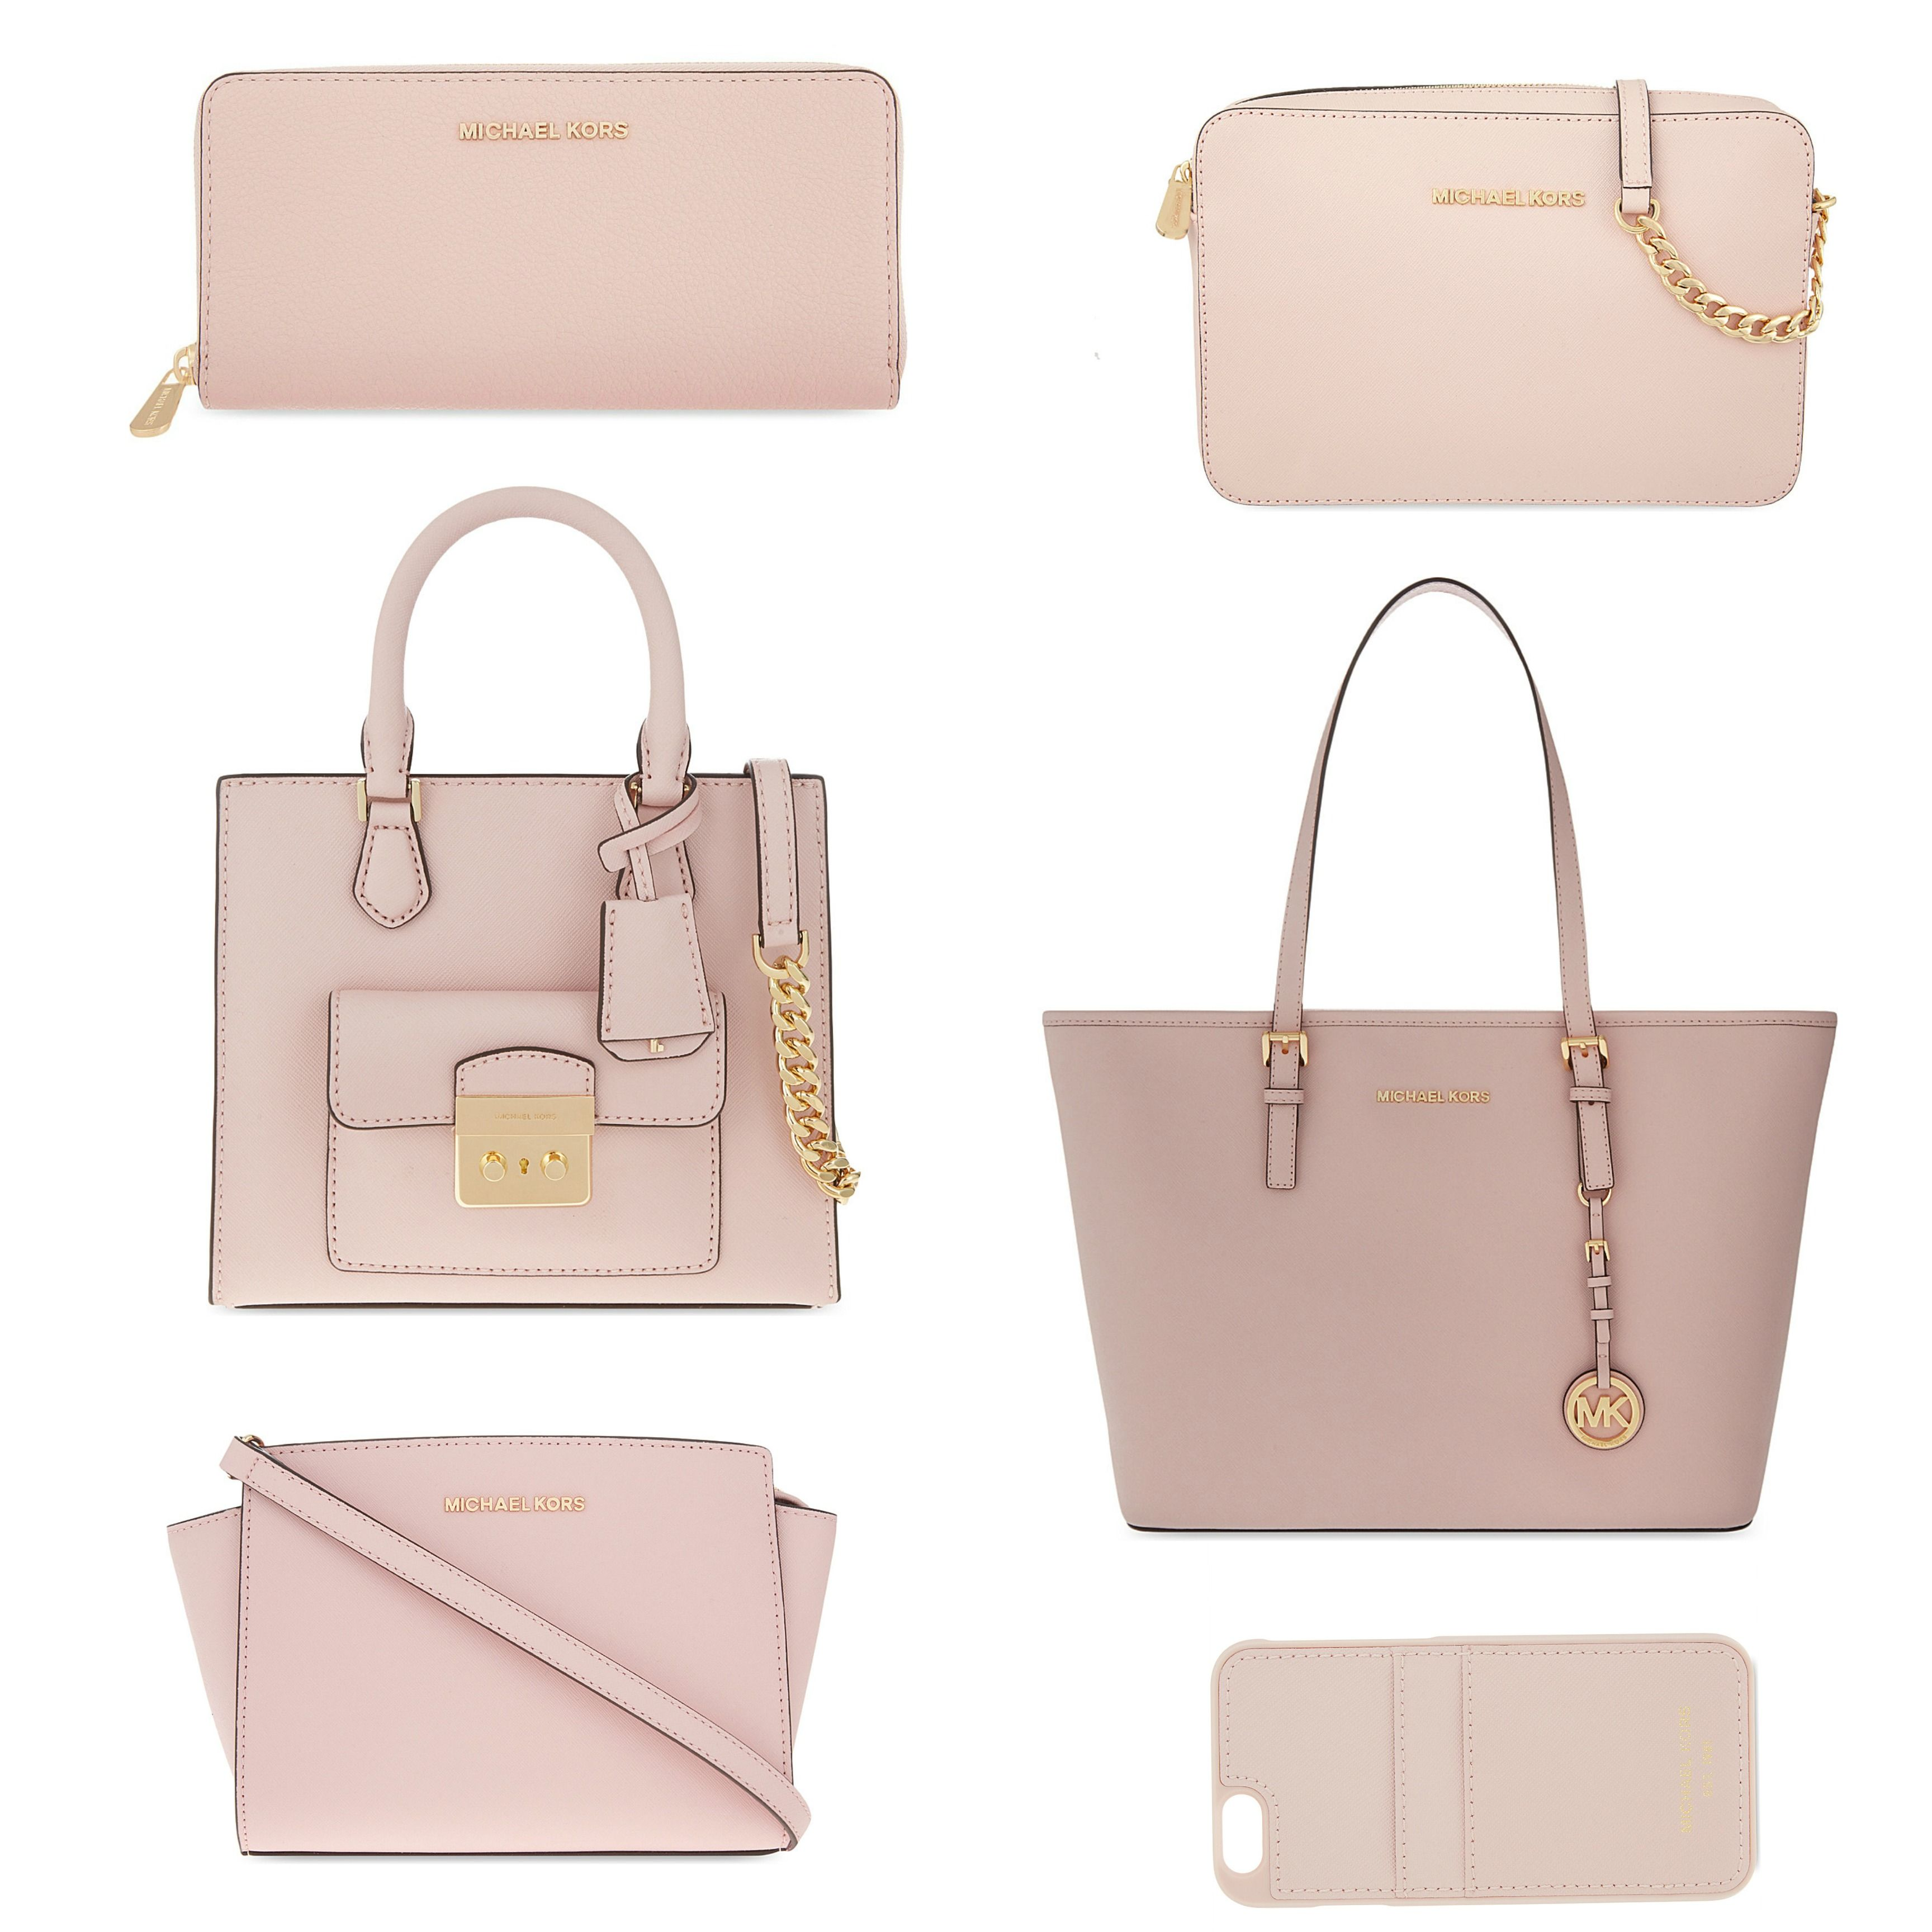 55be4bf2f899 Michael Kors Sale | Wish List | handbags | Michael kors sale ...